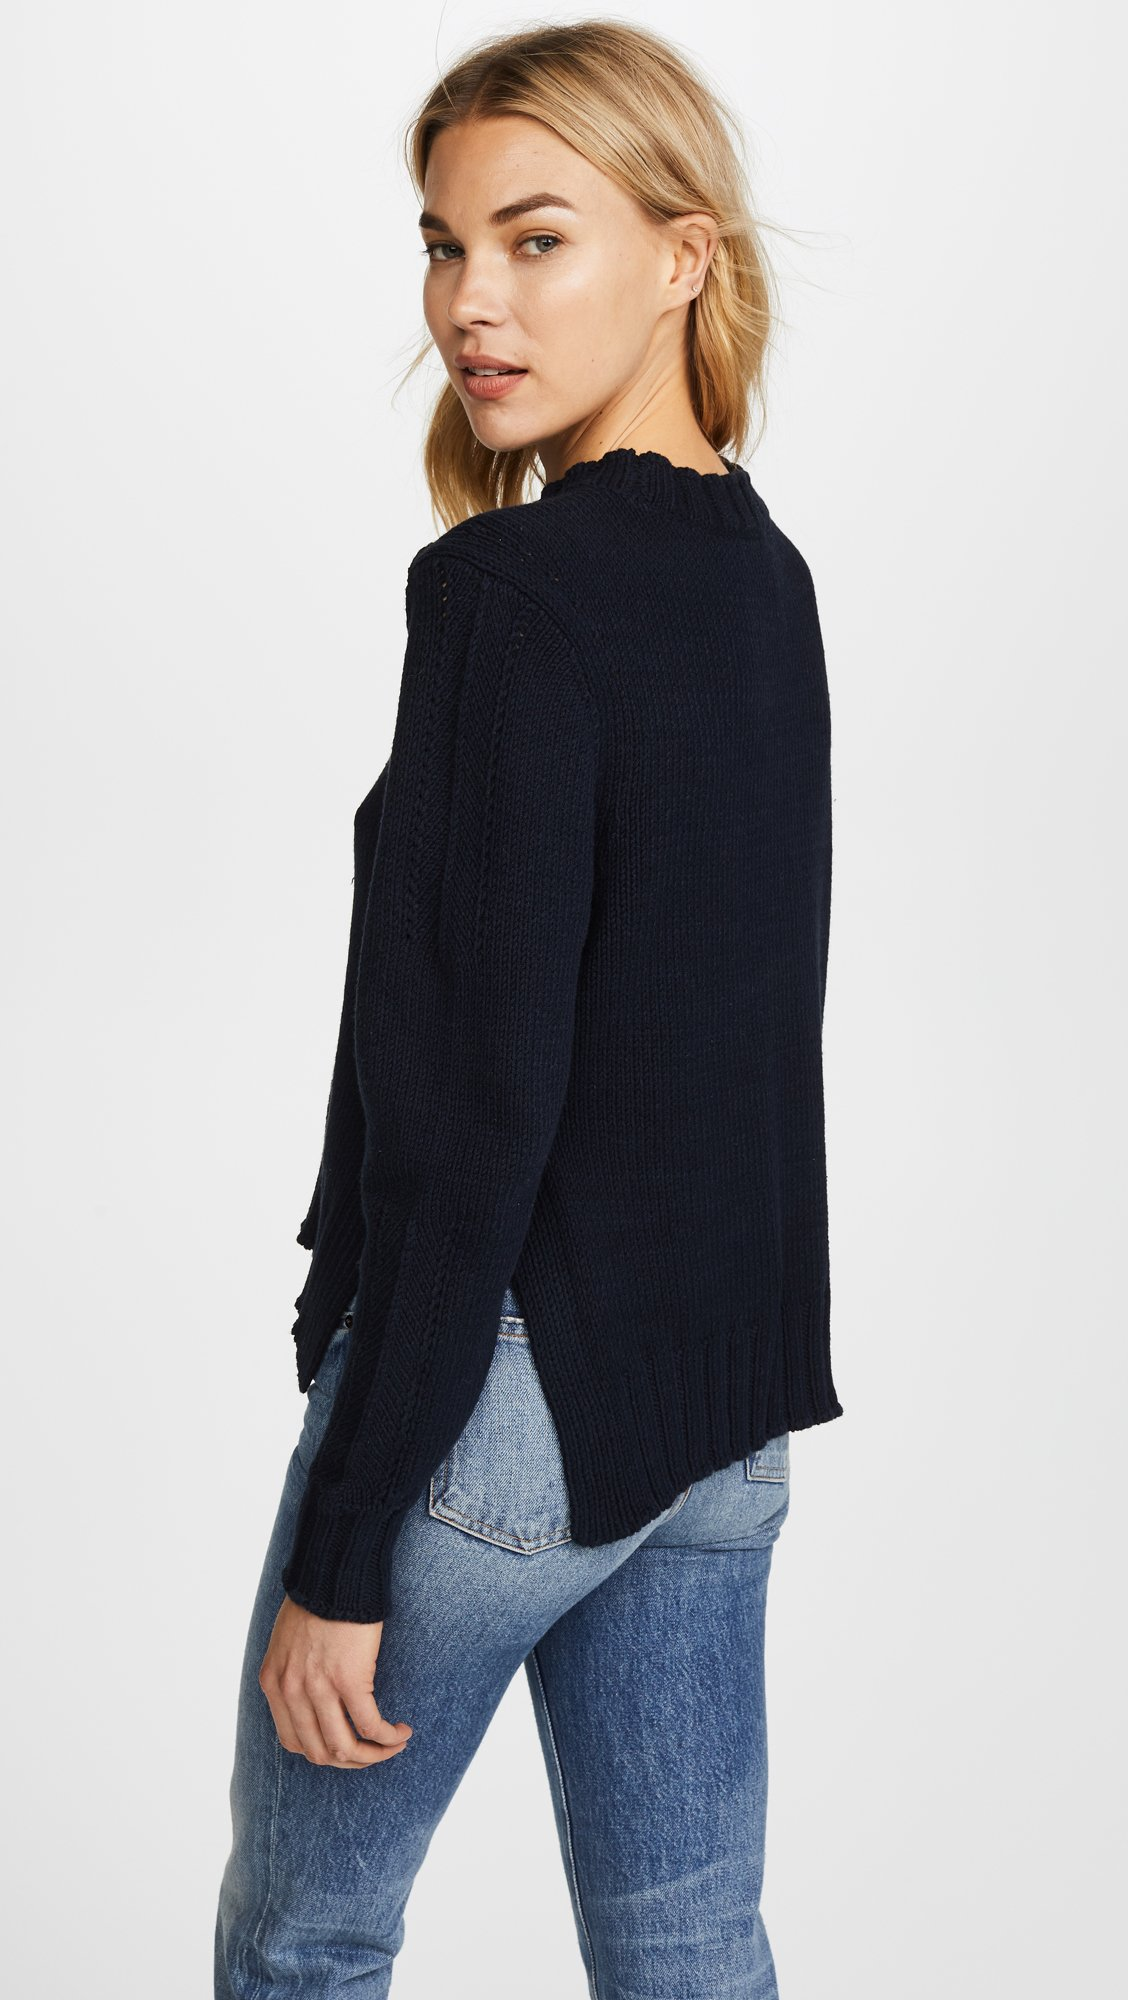 360 SWEATER Women's Kendra Sweater, Midnight, X-Small by 360SWEATER (Image #3)